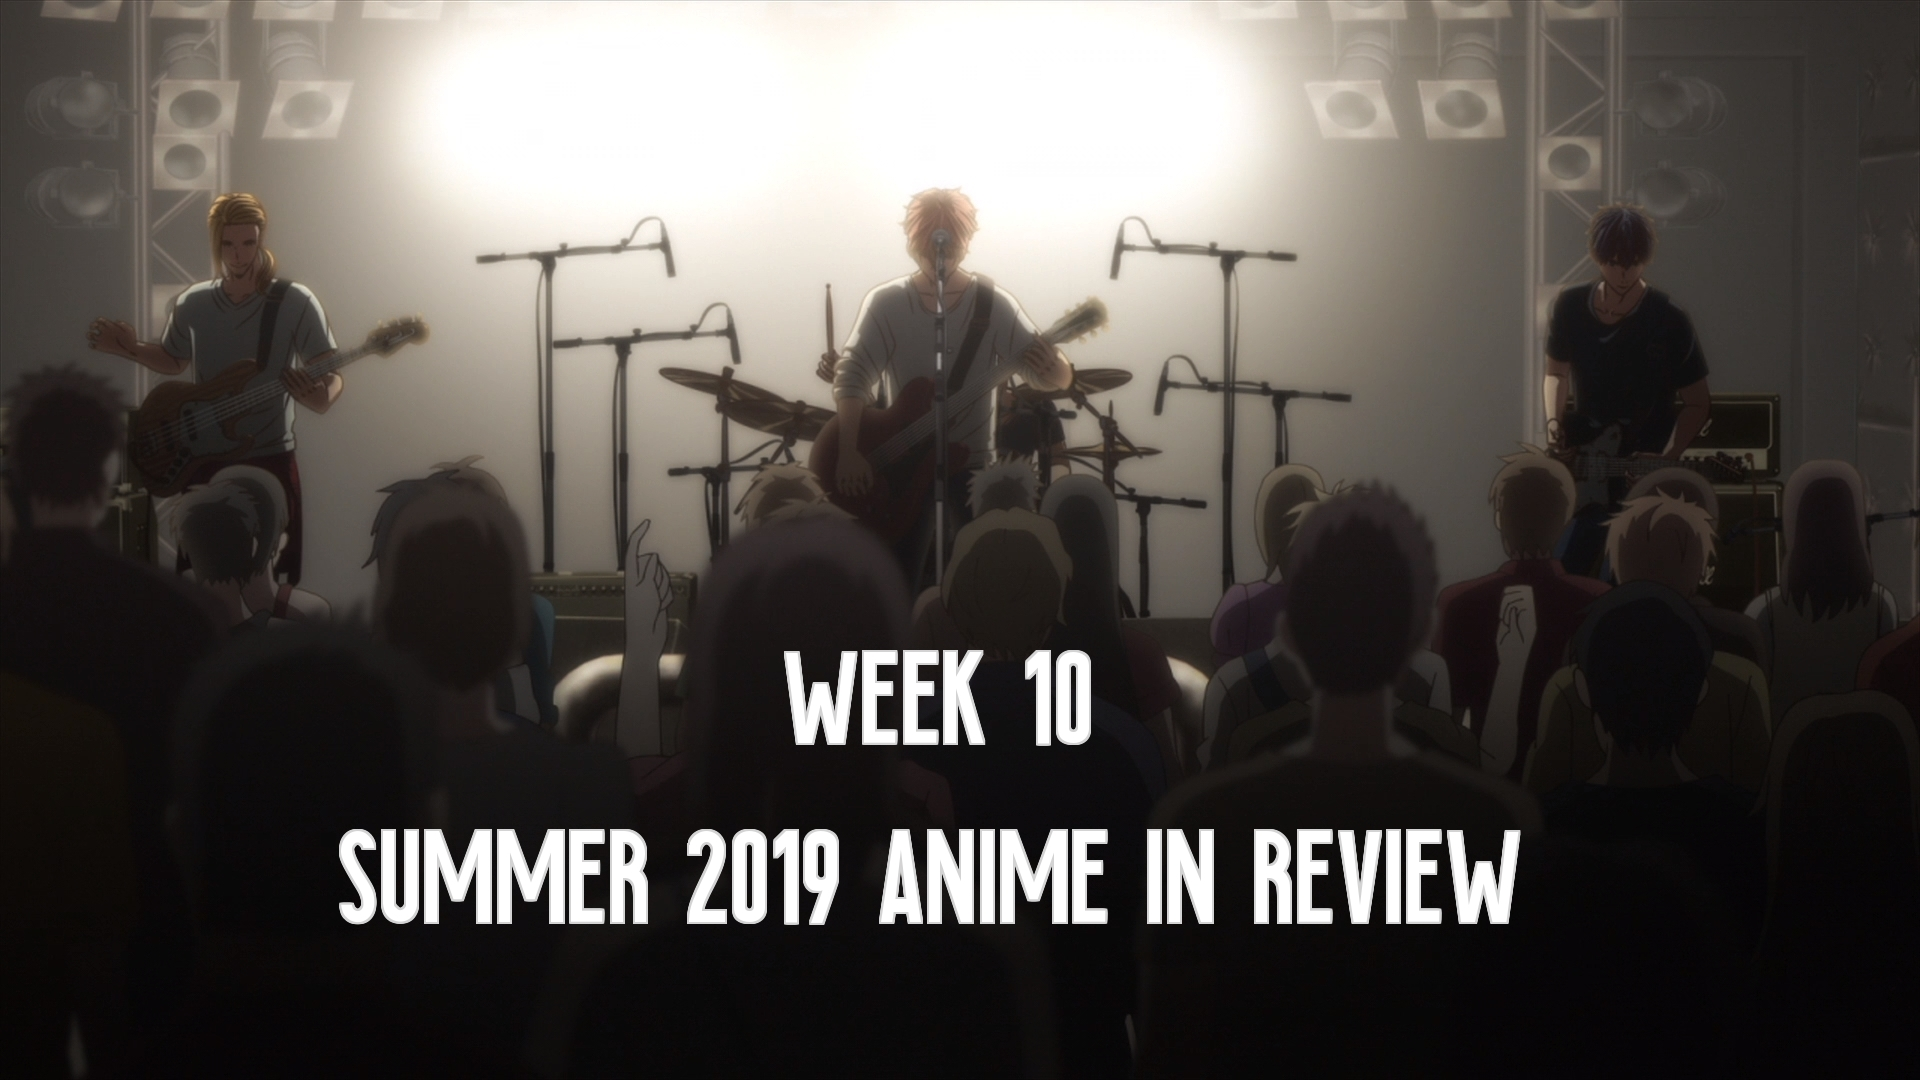 Week 10 of Summer 2019 Anime In Review